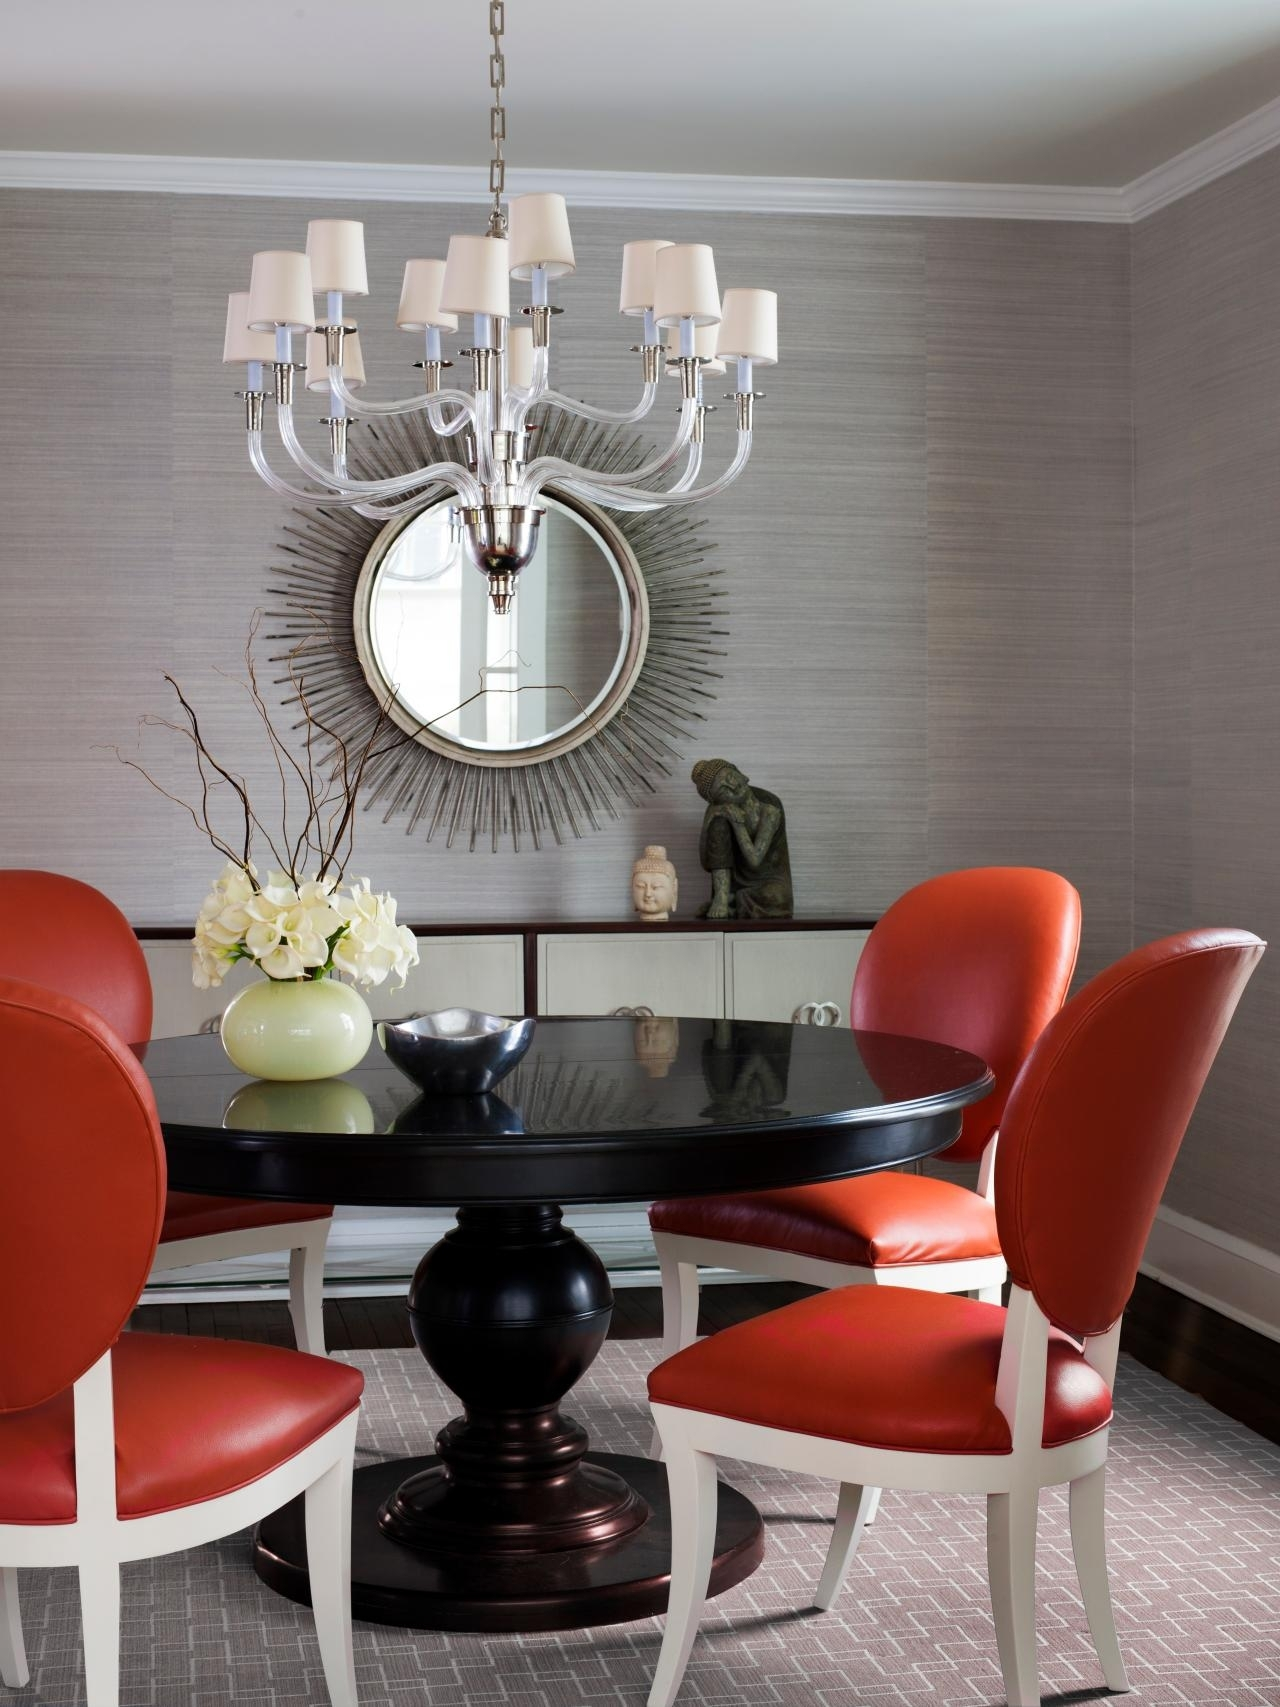 15 Ways To Dress Up Your Dining Room Walls | Hgtv's Decorating Intended For Most Popular Dining Room Wall Accents (View 5 of 15)